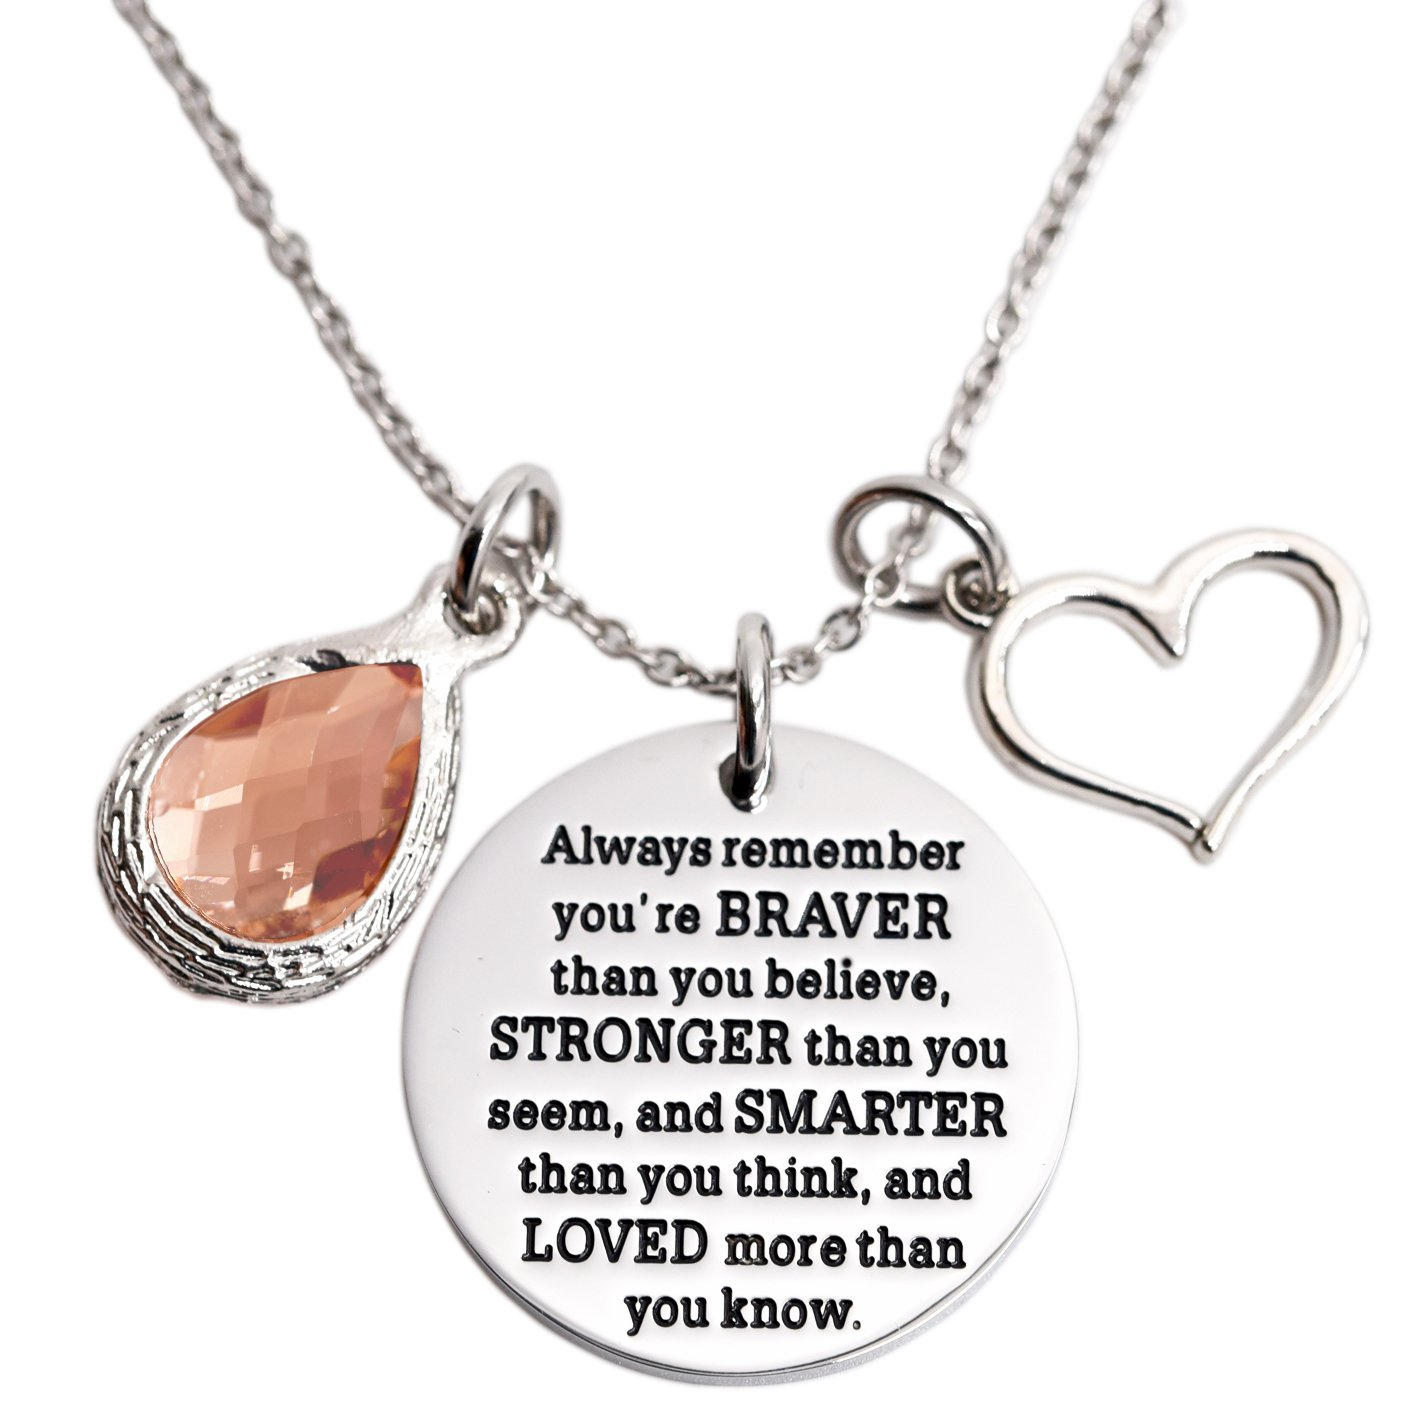 You Are Braver Than You Believe Awareness Necklace Birthstone Graduation Gift Best Friend Encouragement Gifts …